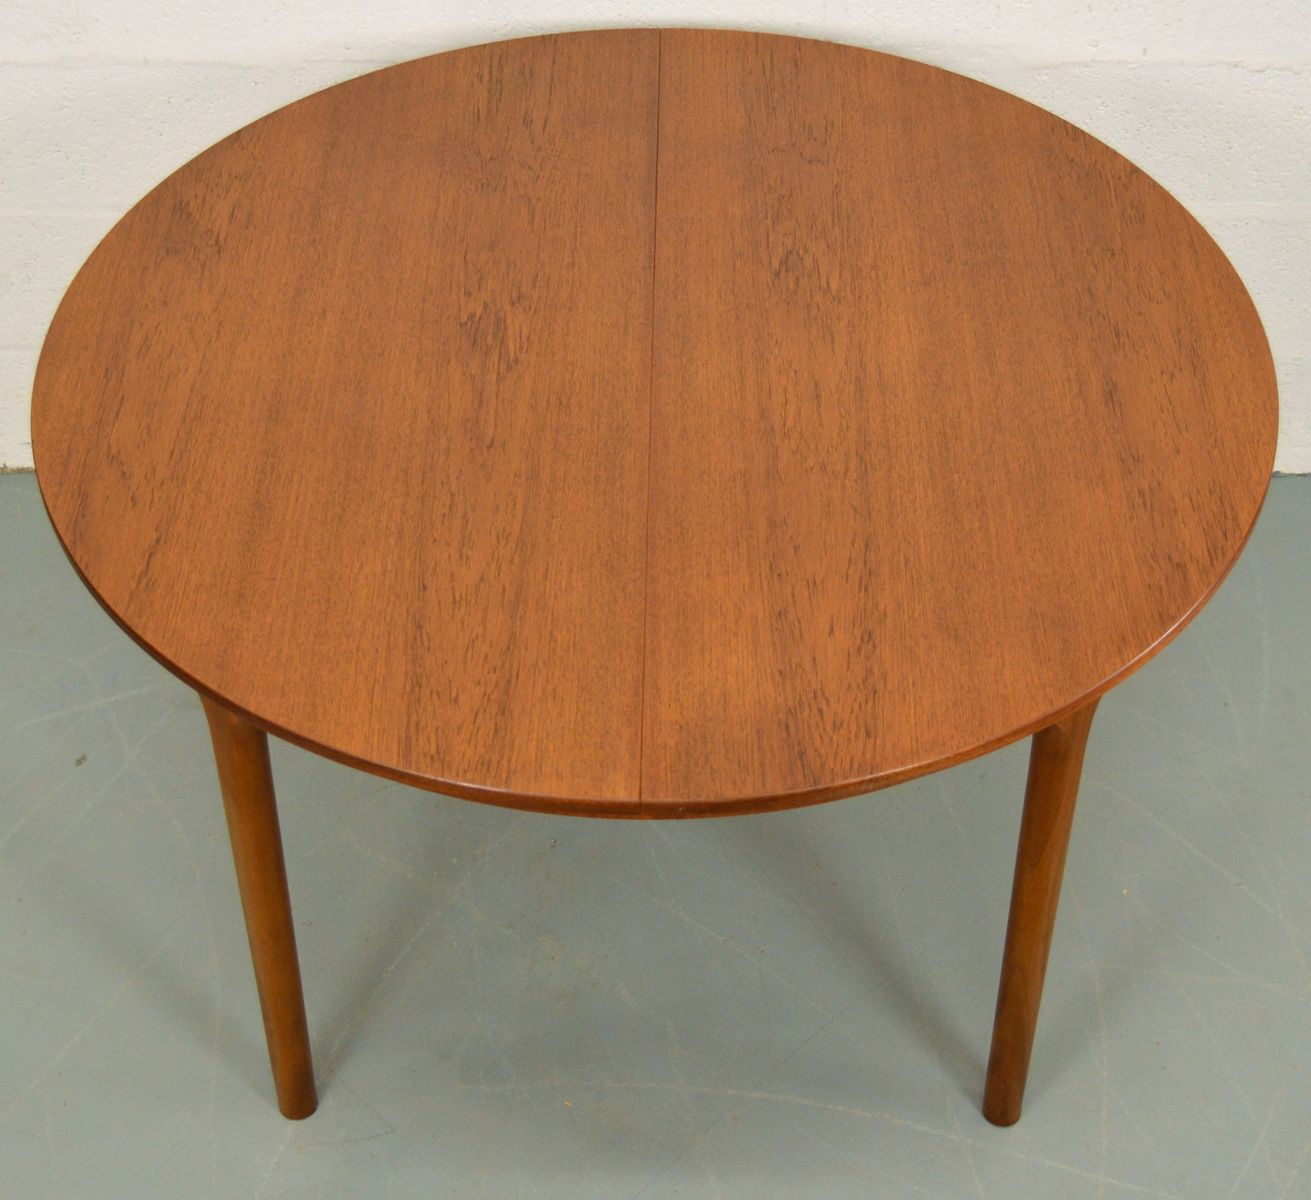 Mid Century Extendable Circular Teak Dining Table From McIntosh For Sale At P